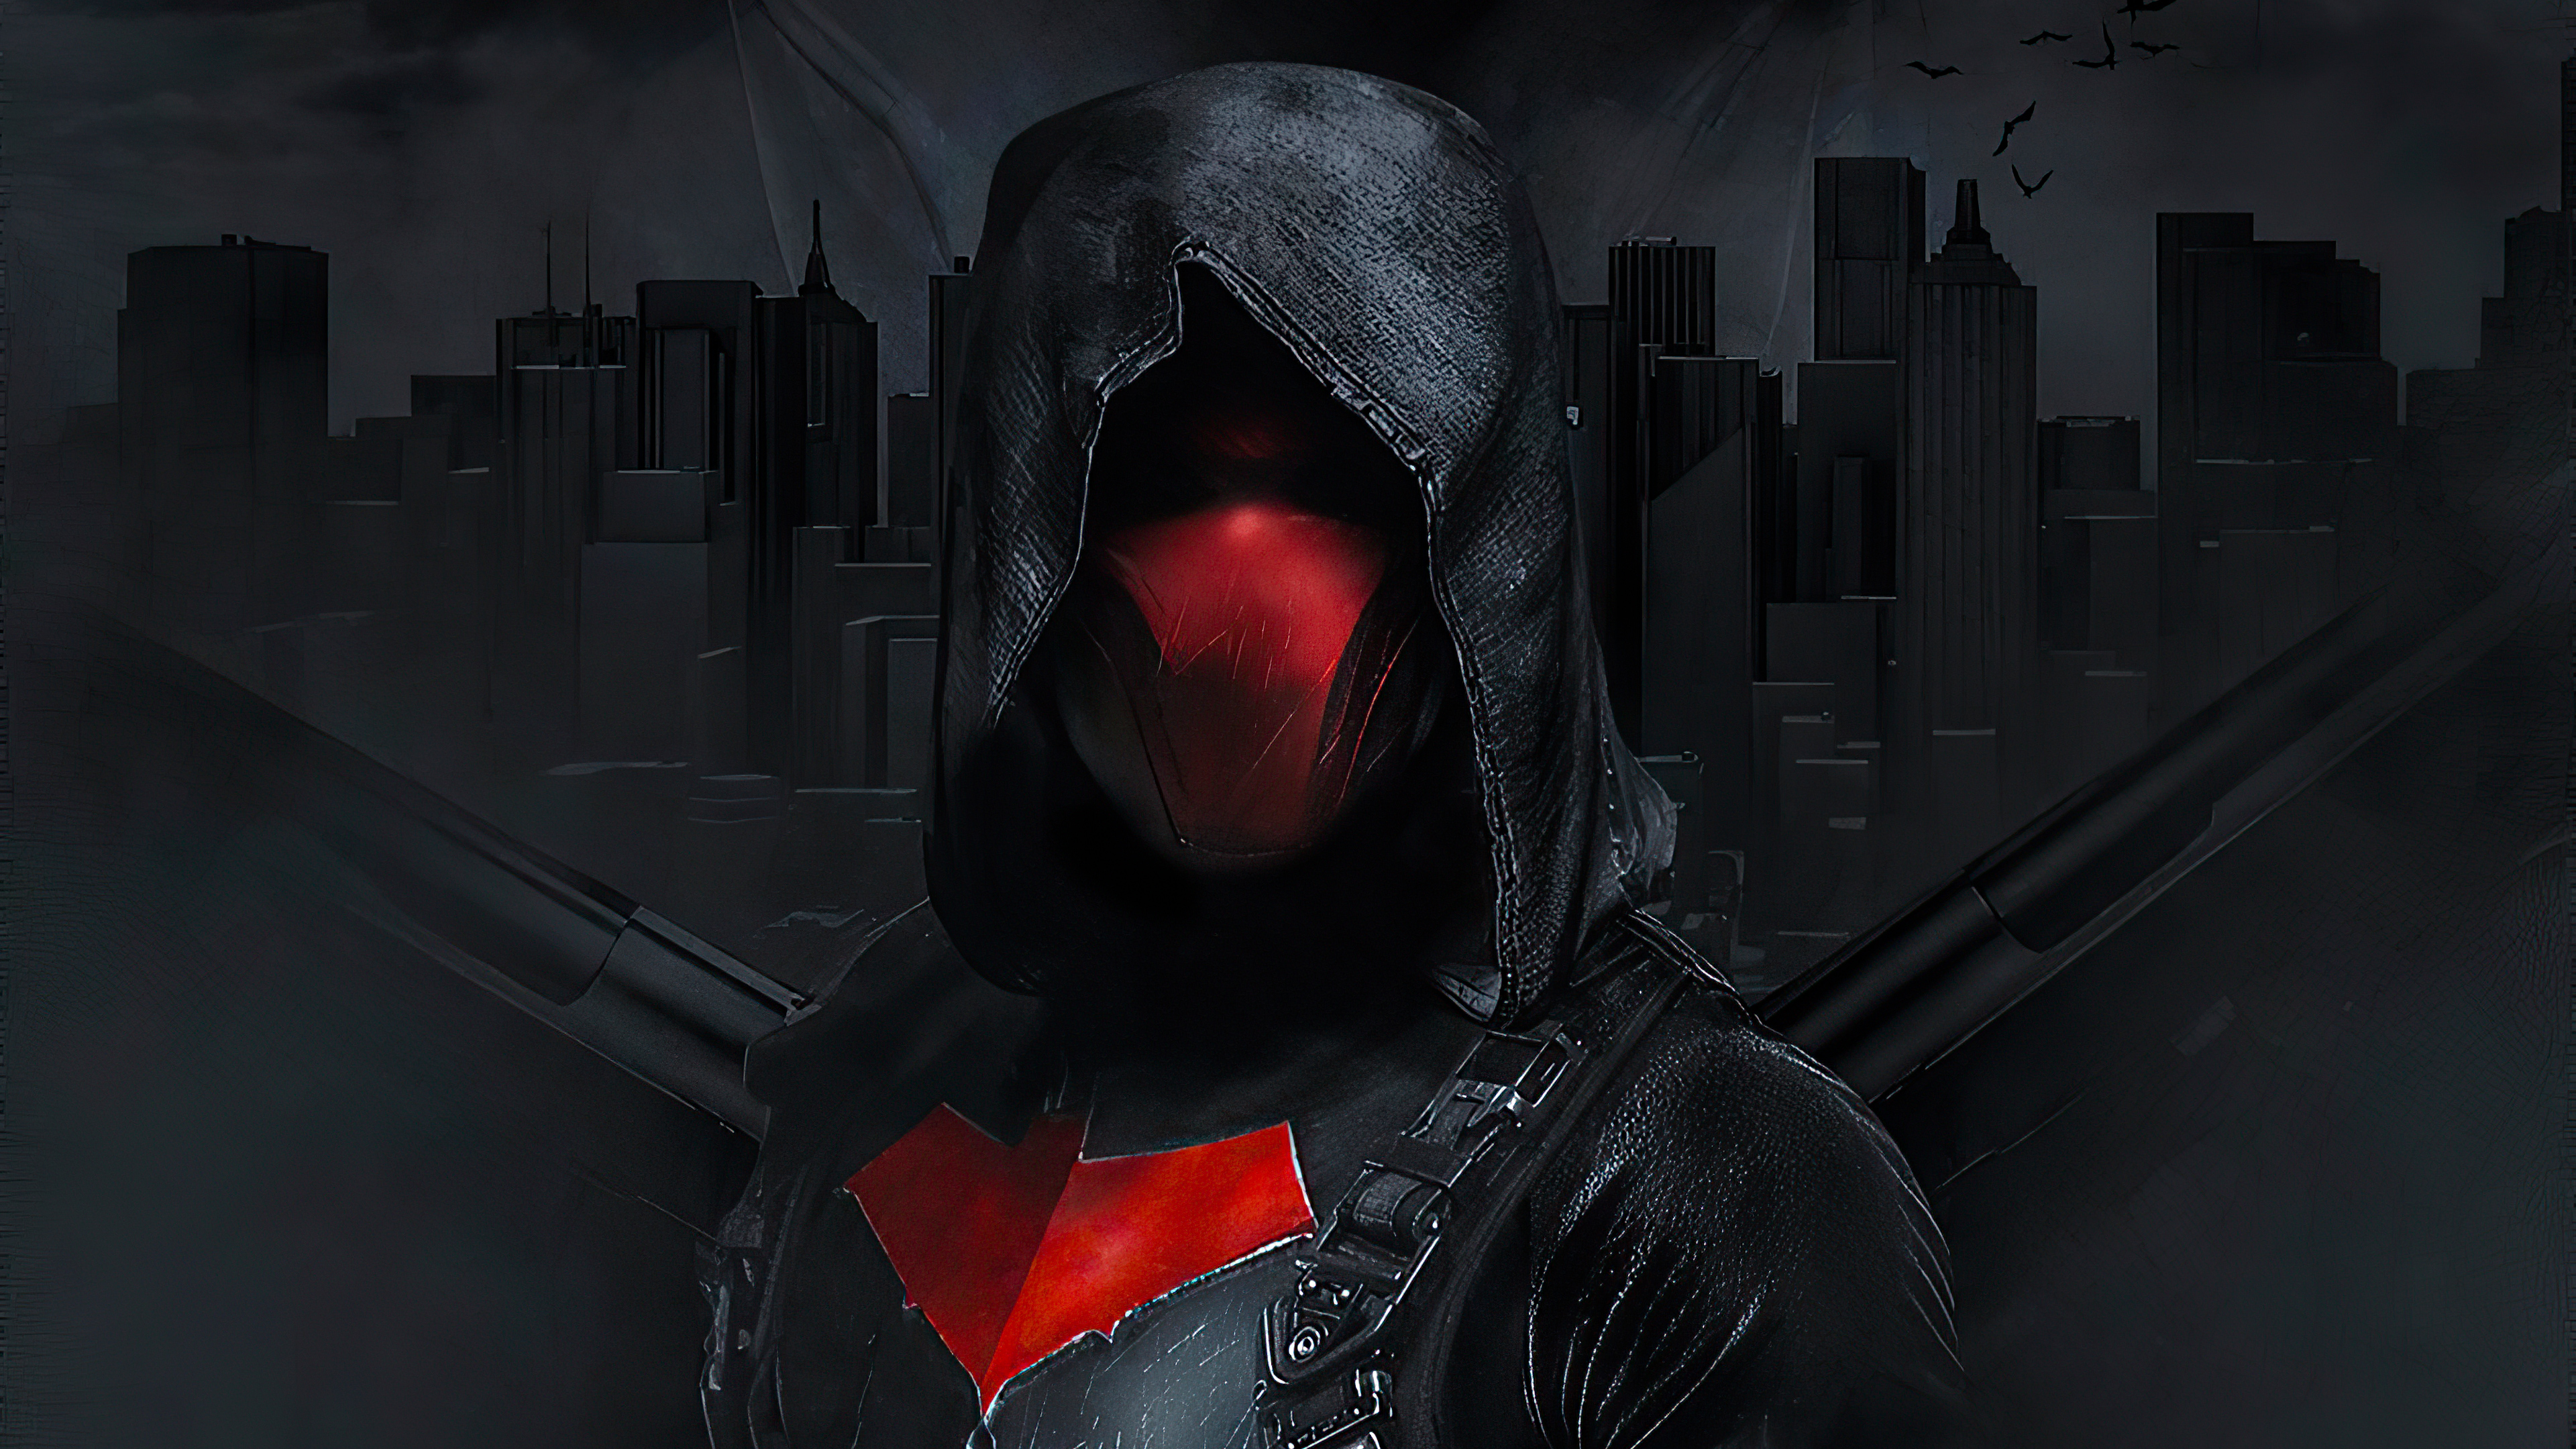 Fondos de pantalla Artwork de Red Hood 2020